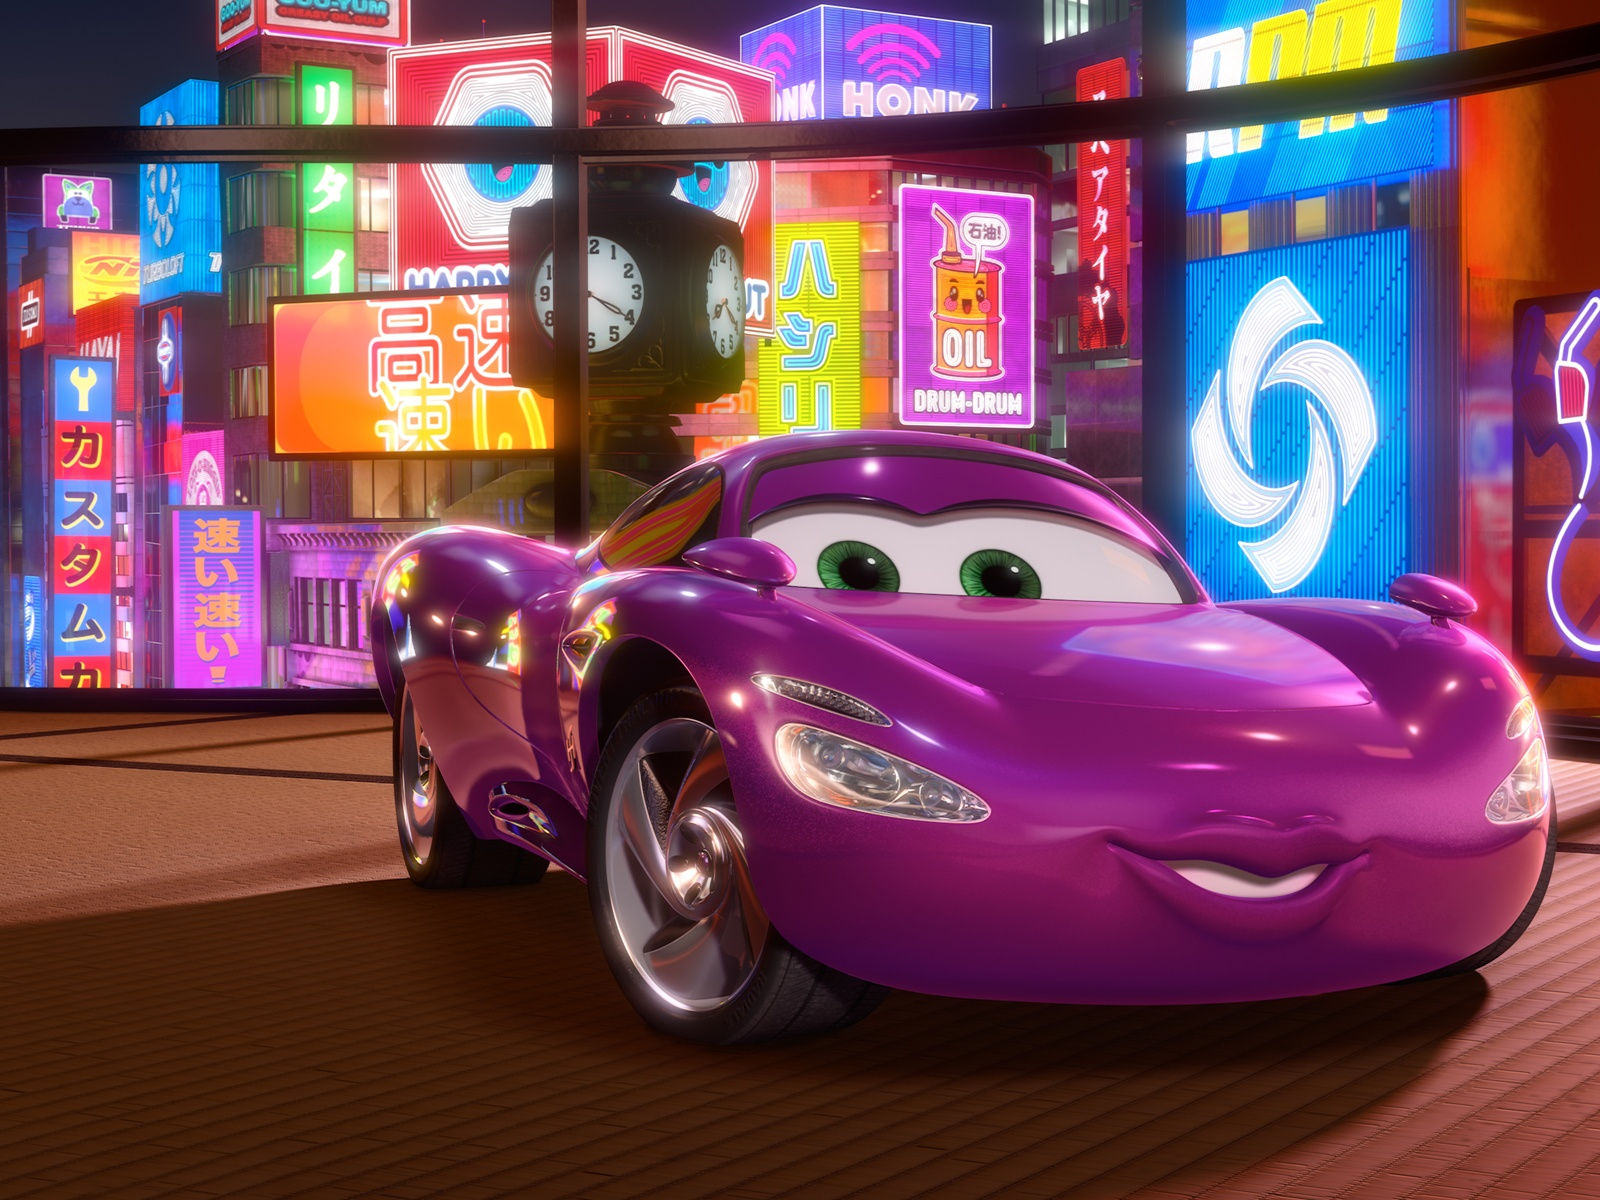 Holley Shiftwell In Cars 2 Movie Wallpapers In Jpg Format For Free